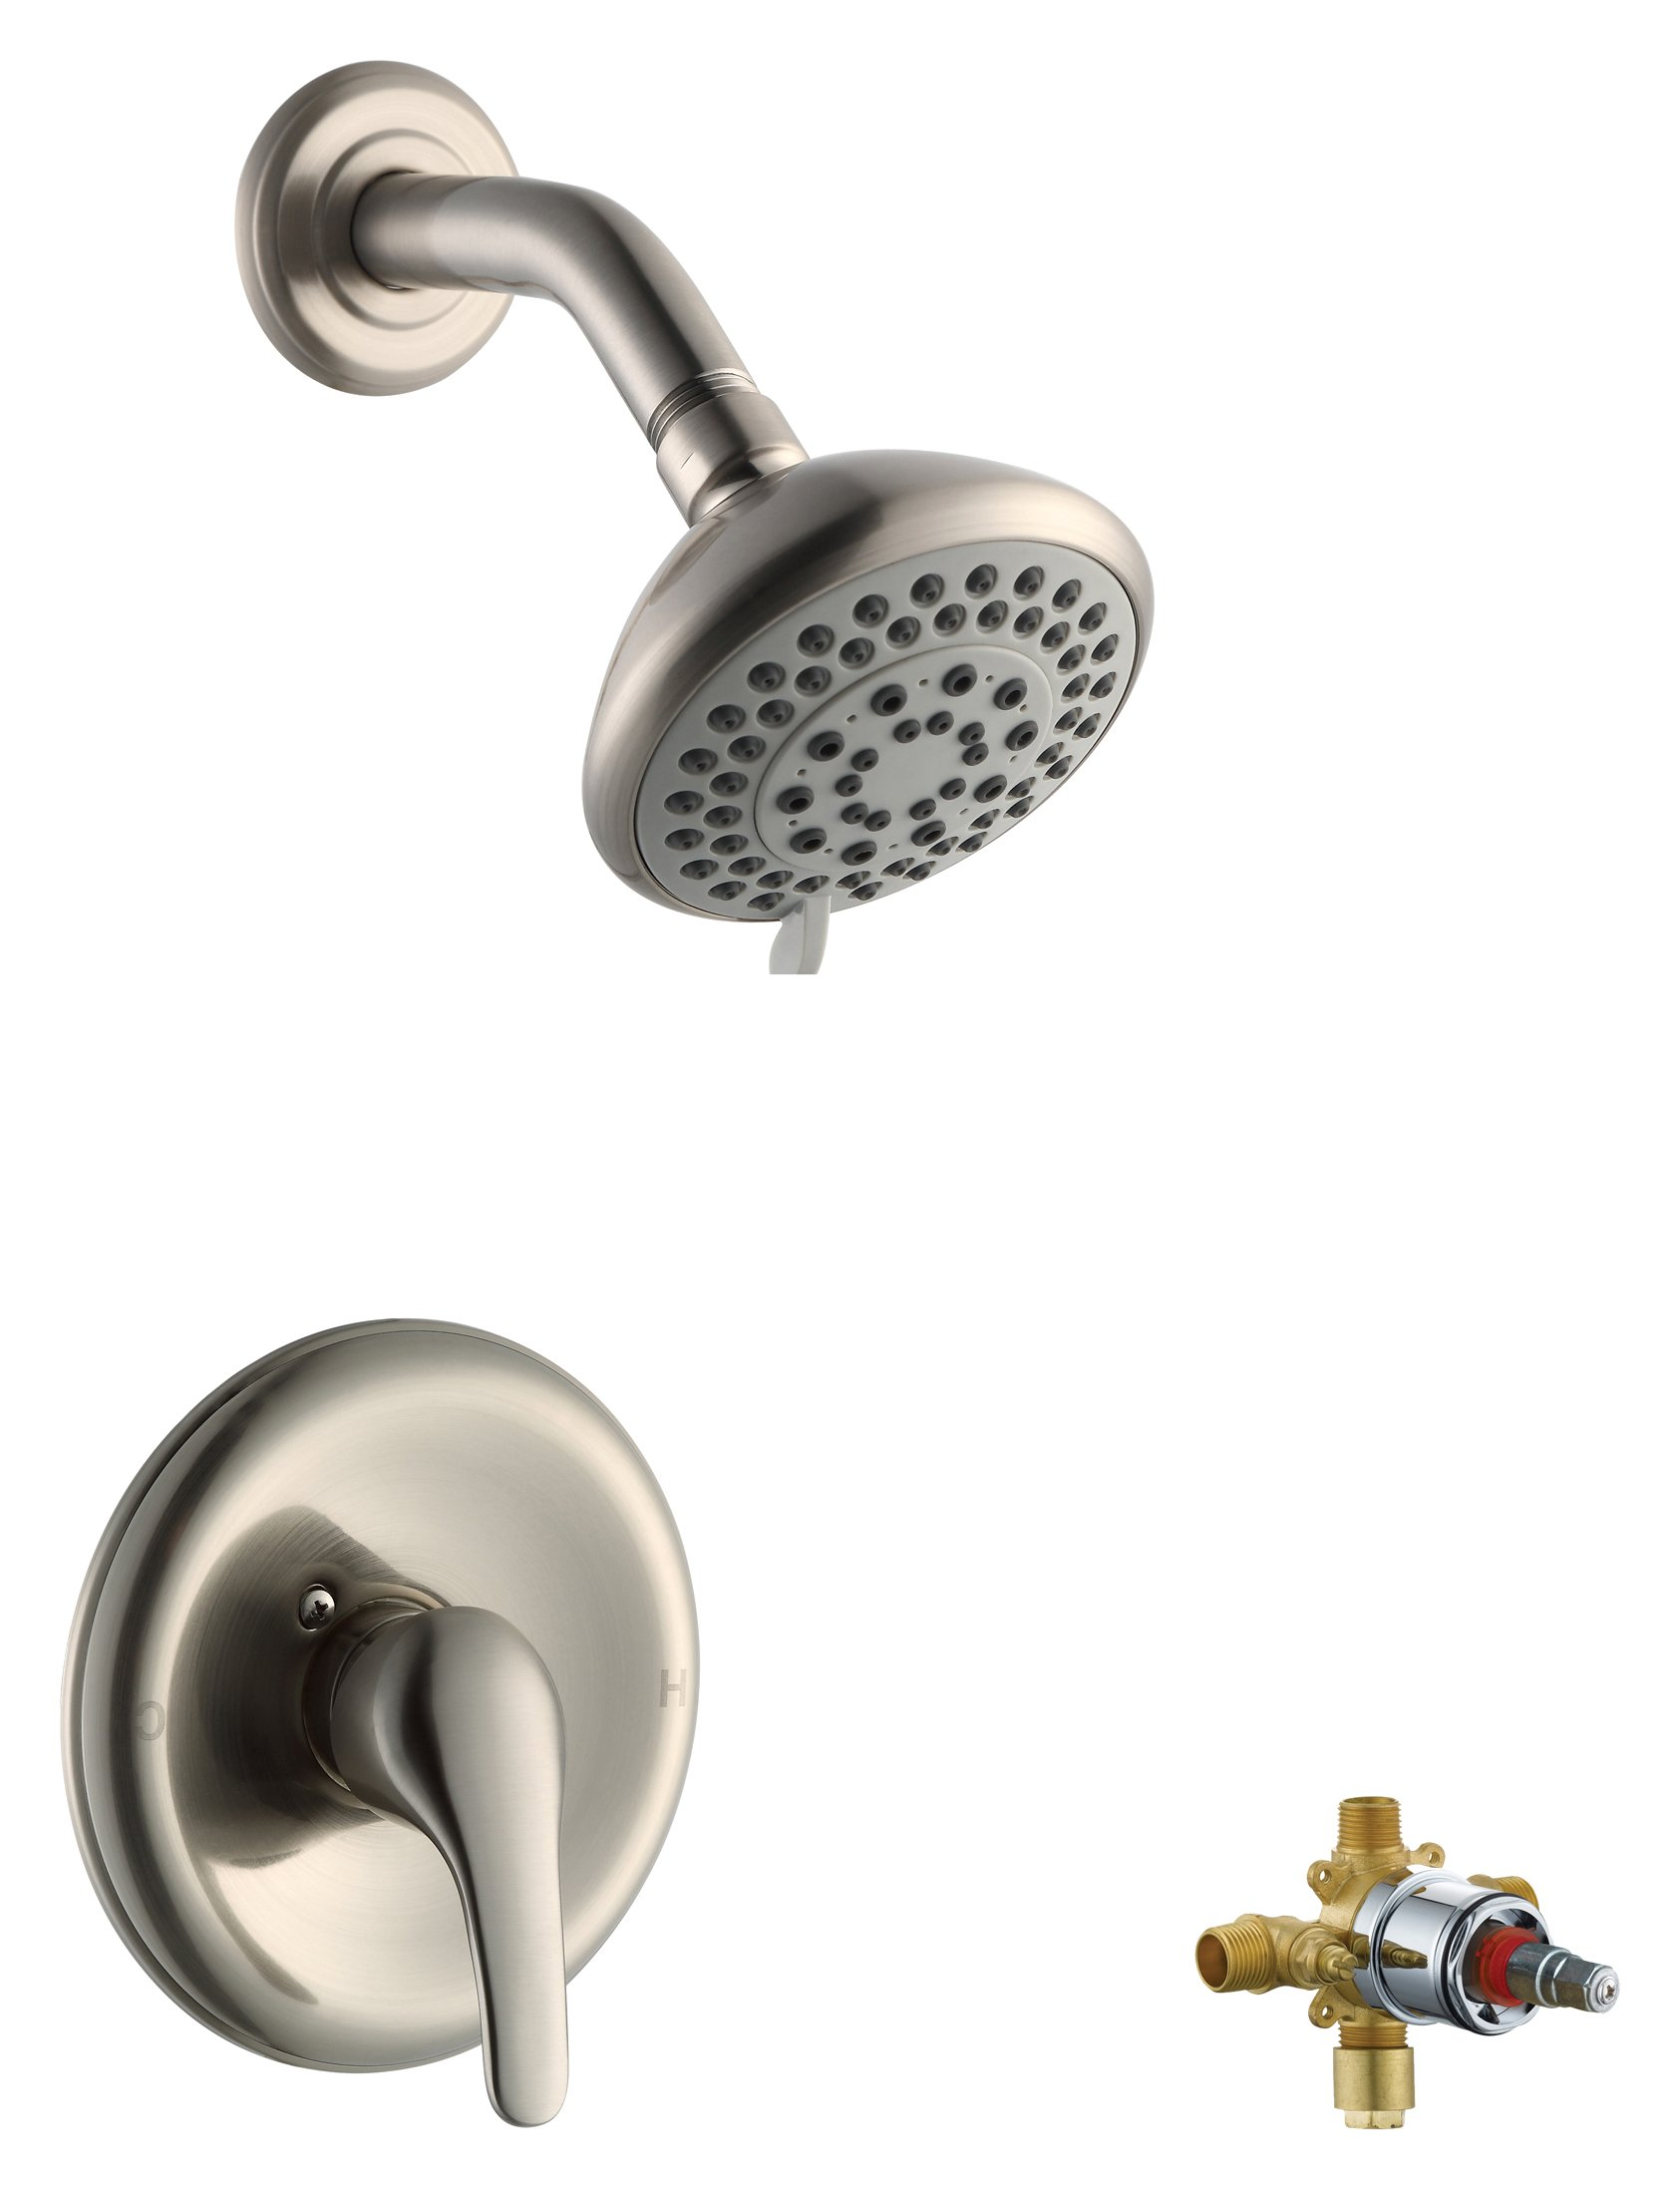 Design House 545780 Middleton Shower Faucet, Satin Nickel, Includes Complete Installation Kit with Valve by Design House